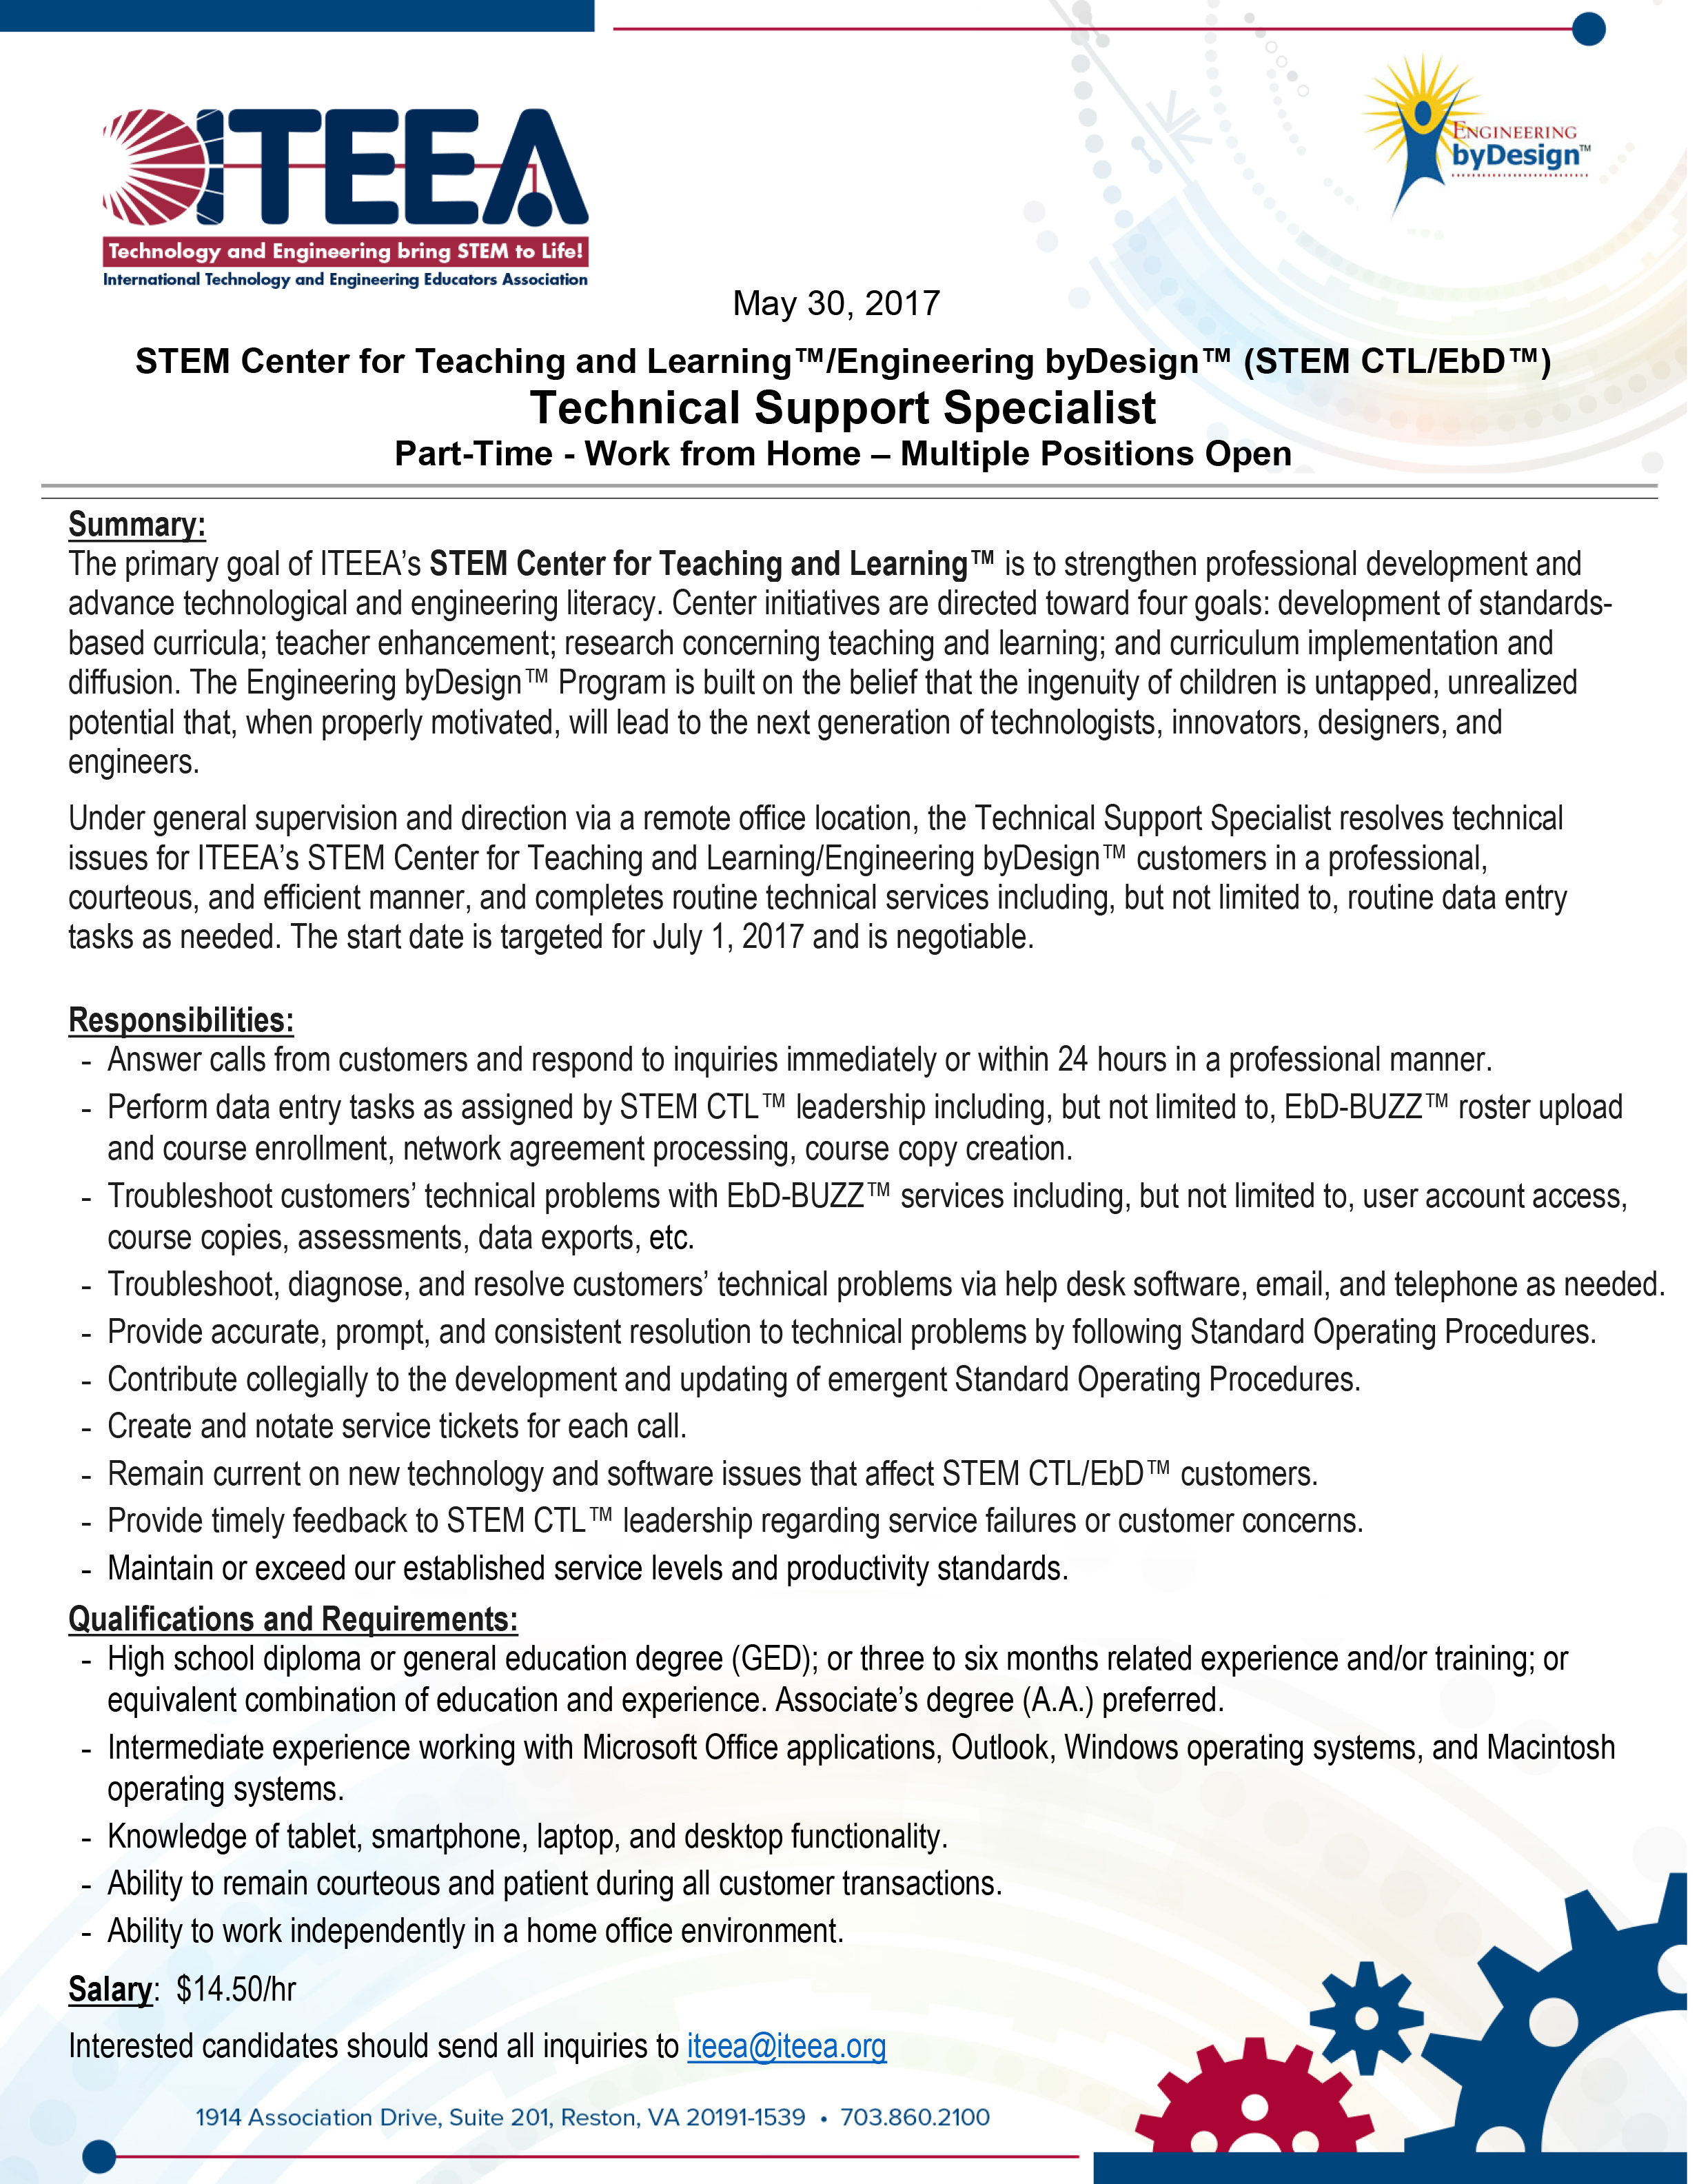 ITEEA - Job Opening: Technical Support Specialist